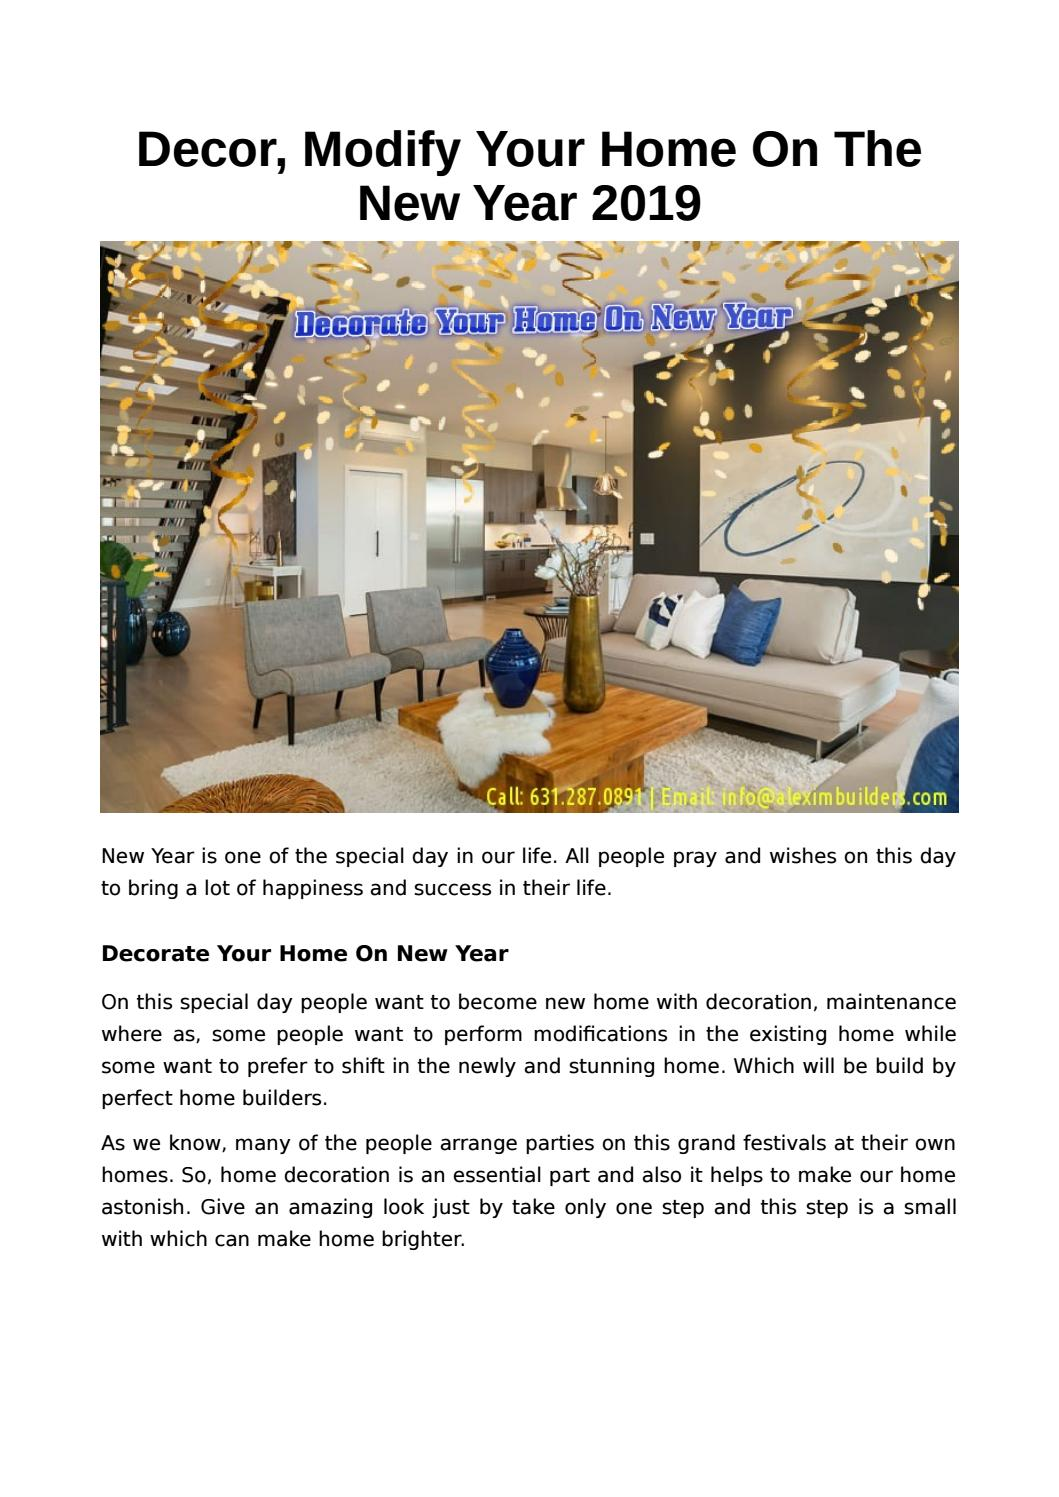 Decor Modify Your Home On The New Year 2019 By Alexim